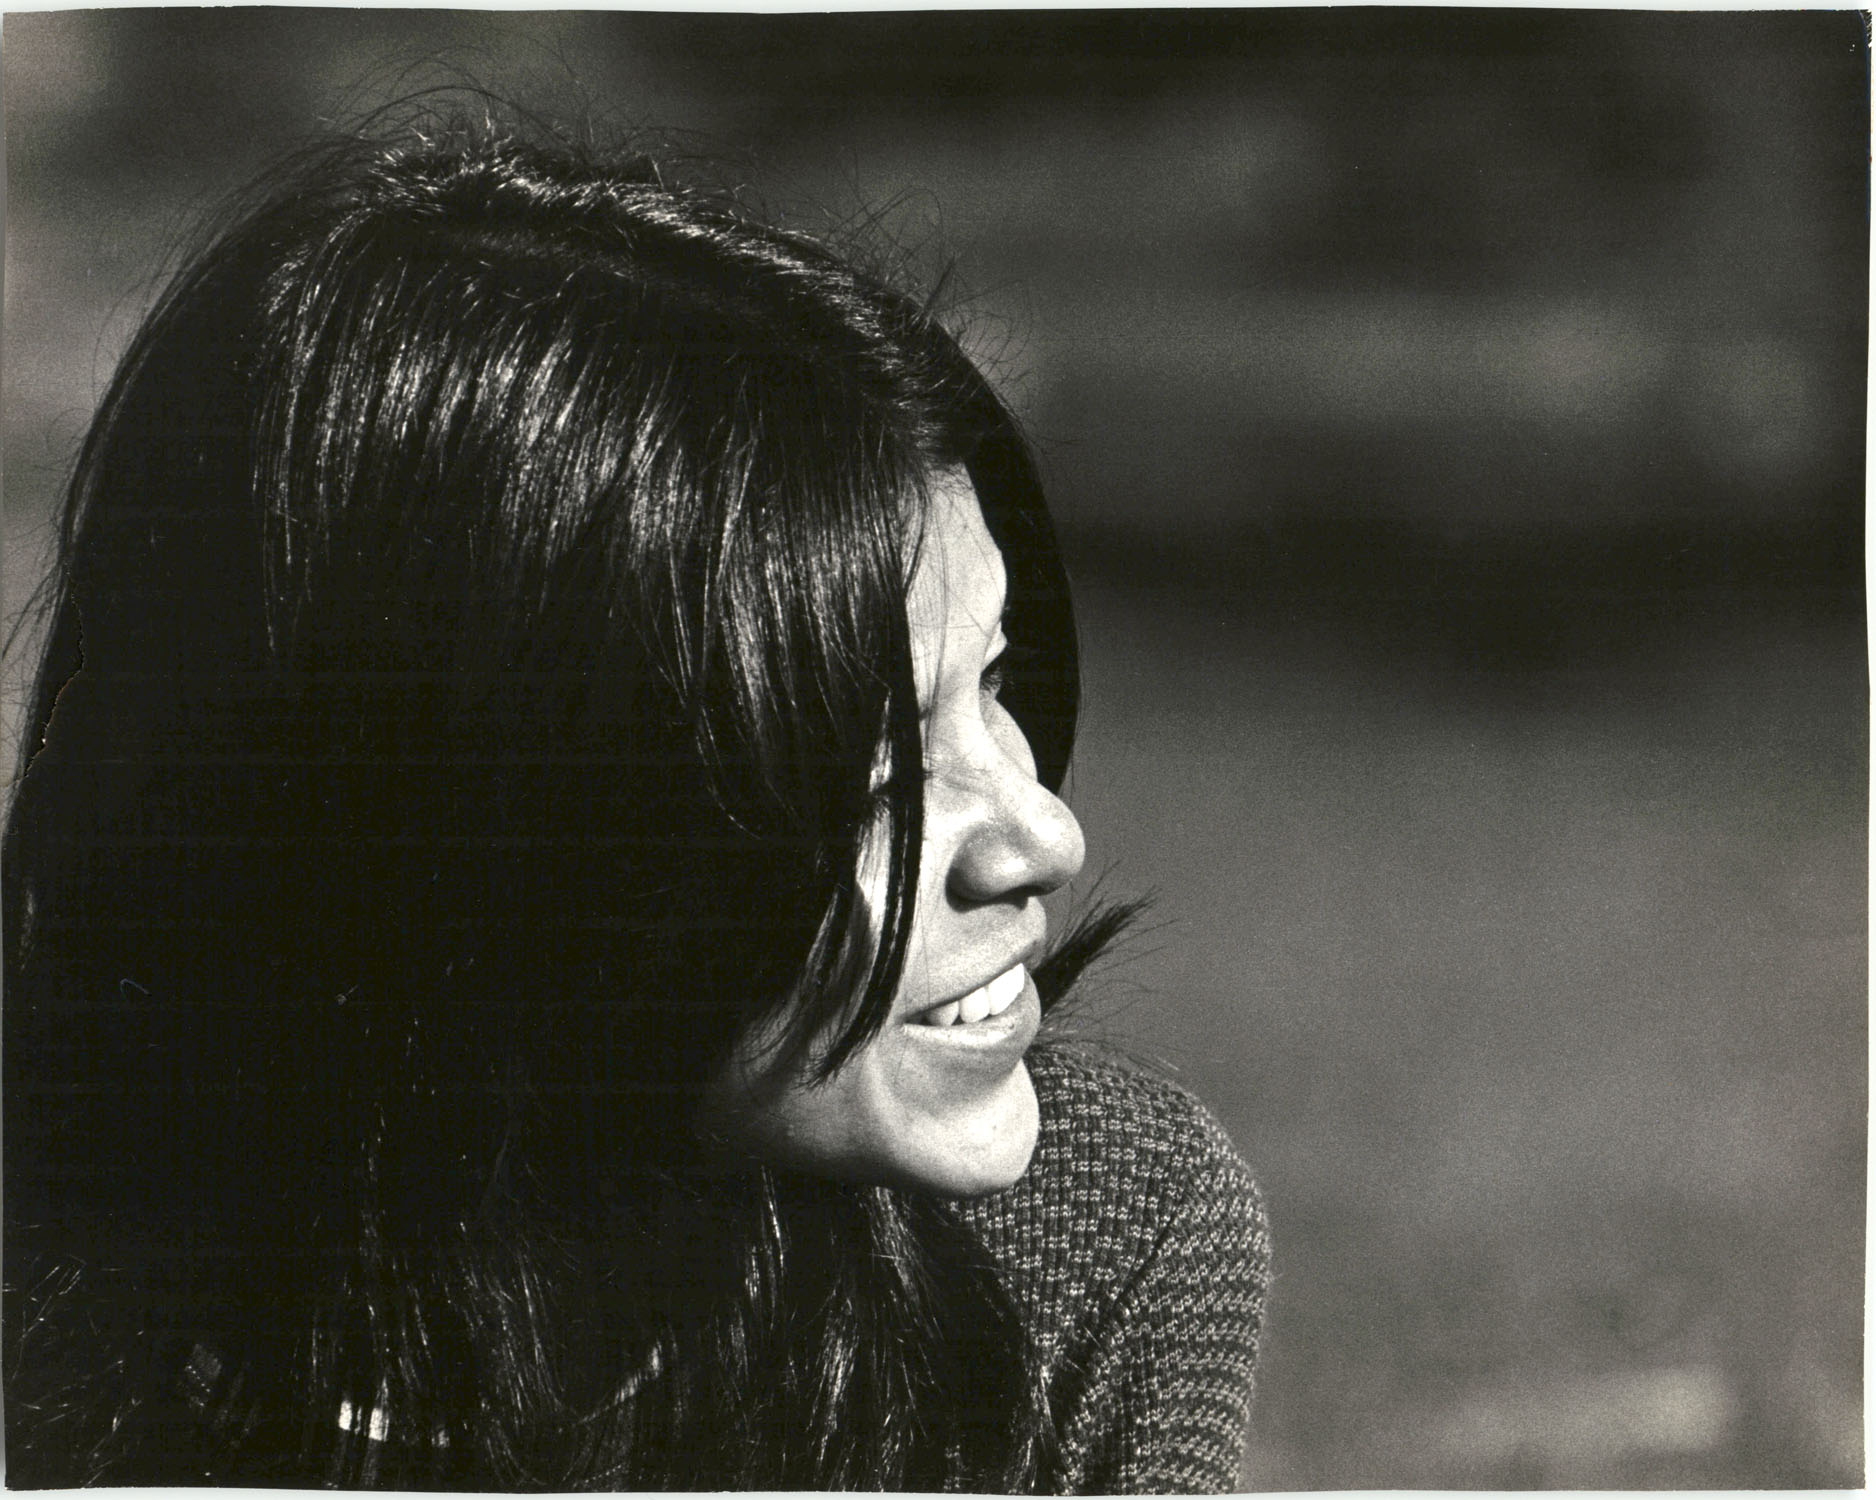 Young Woman Smiling Outdoors, University of California, Santa Cruz